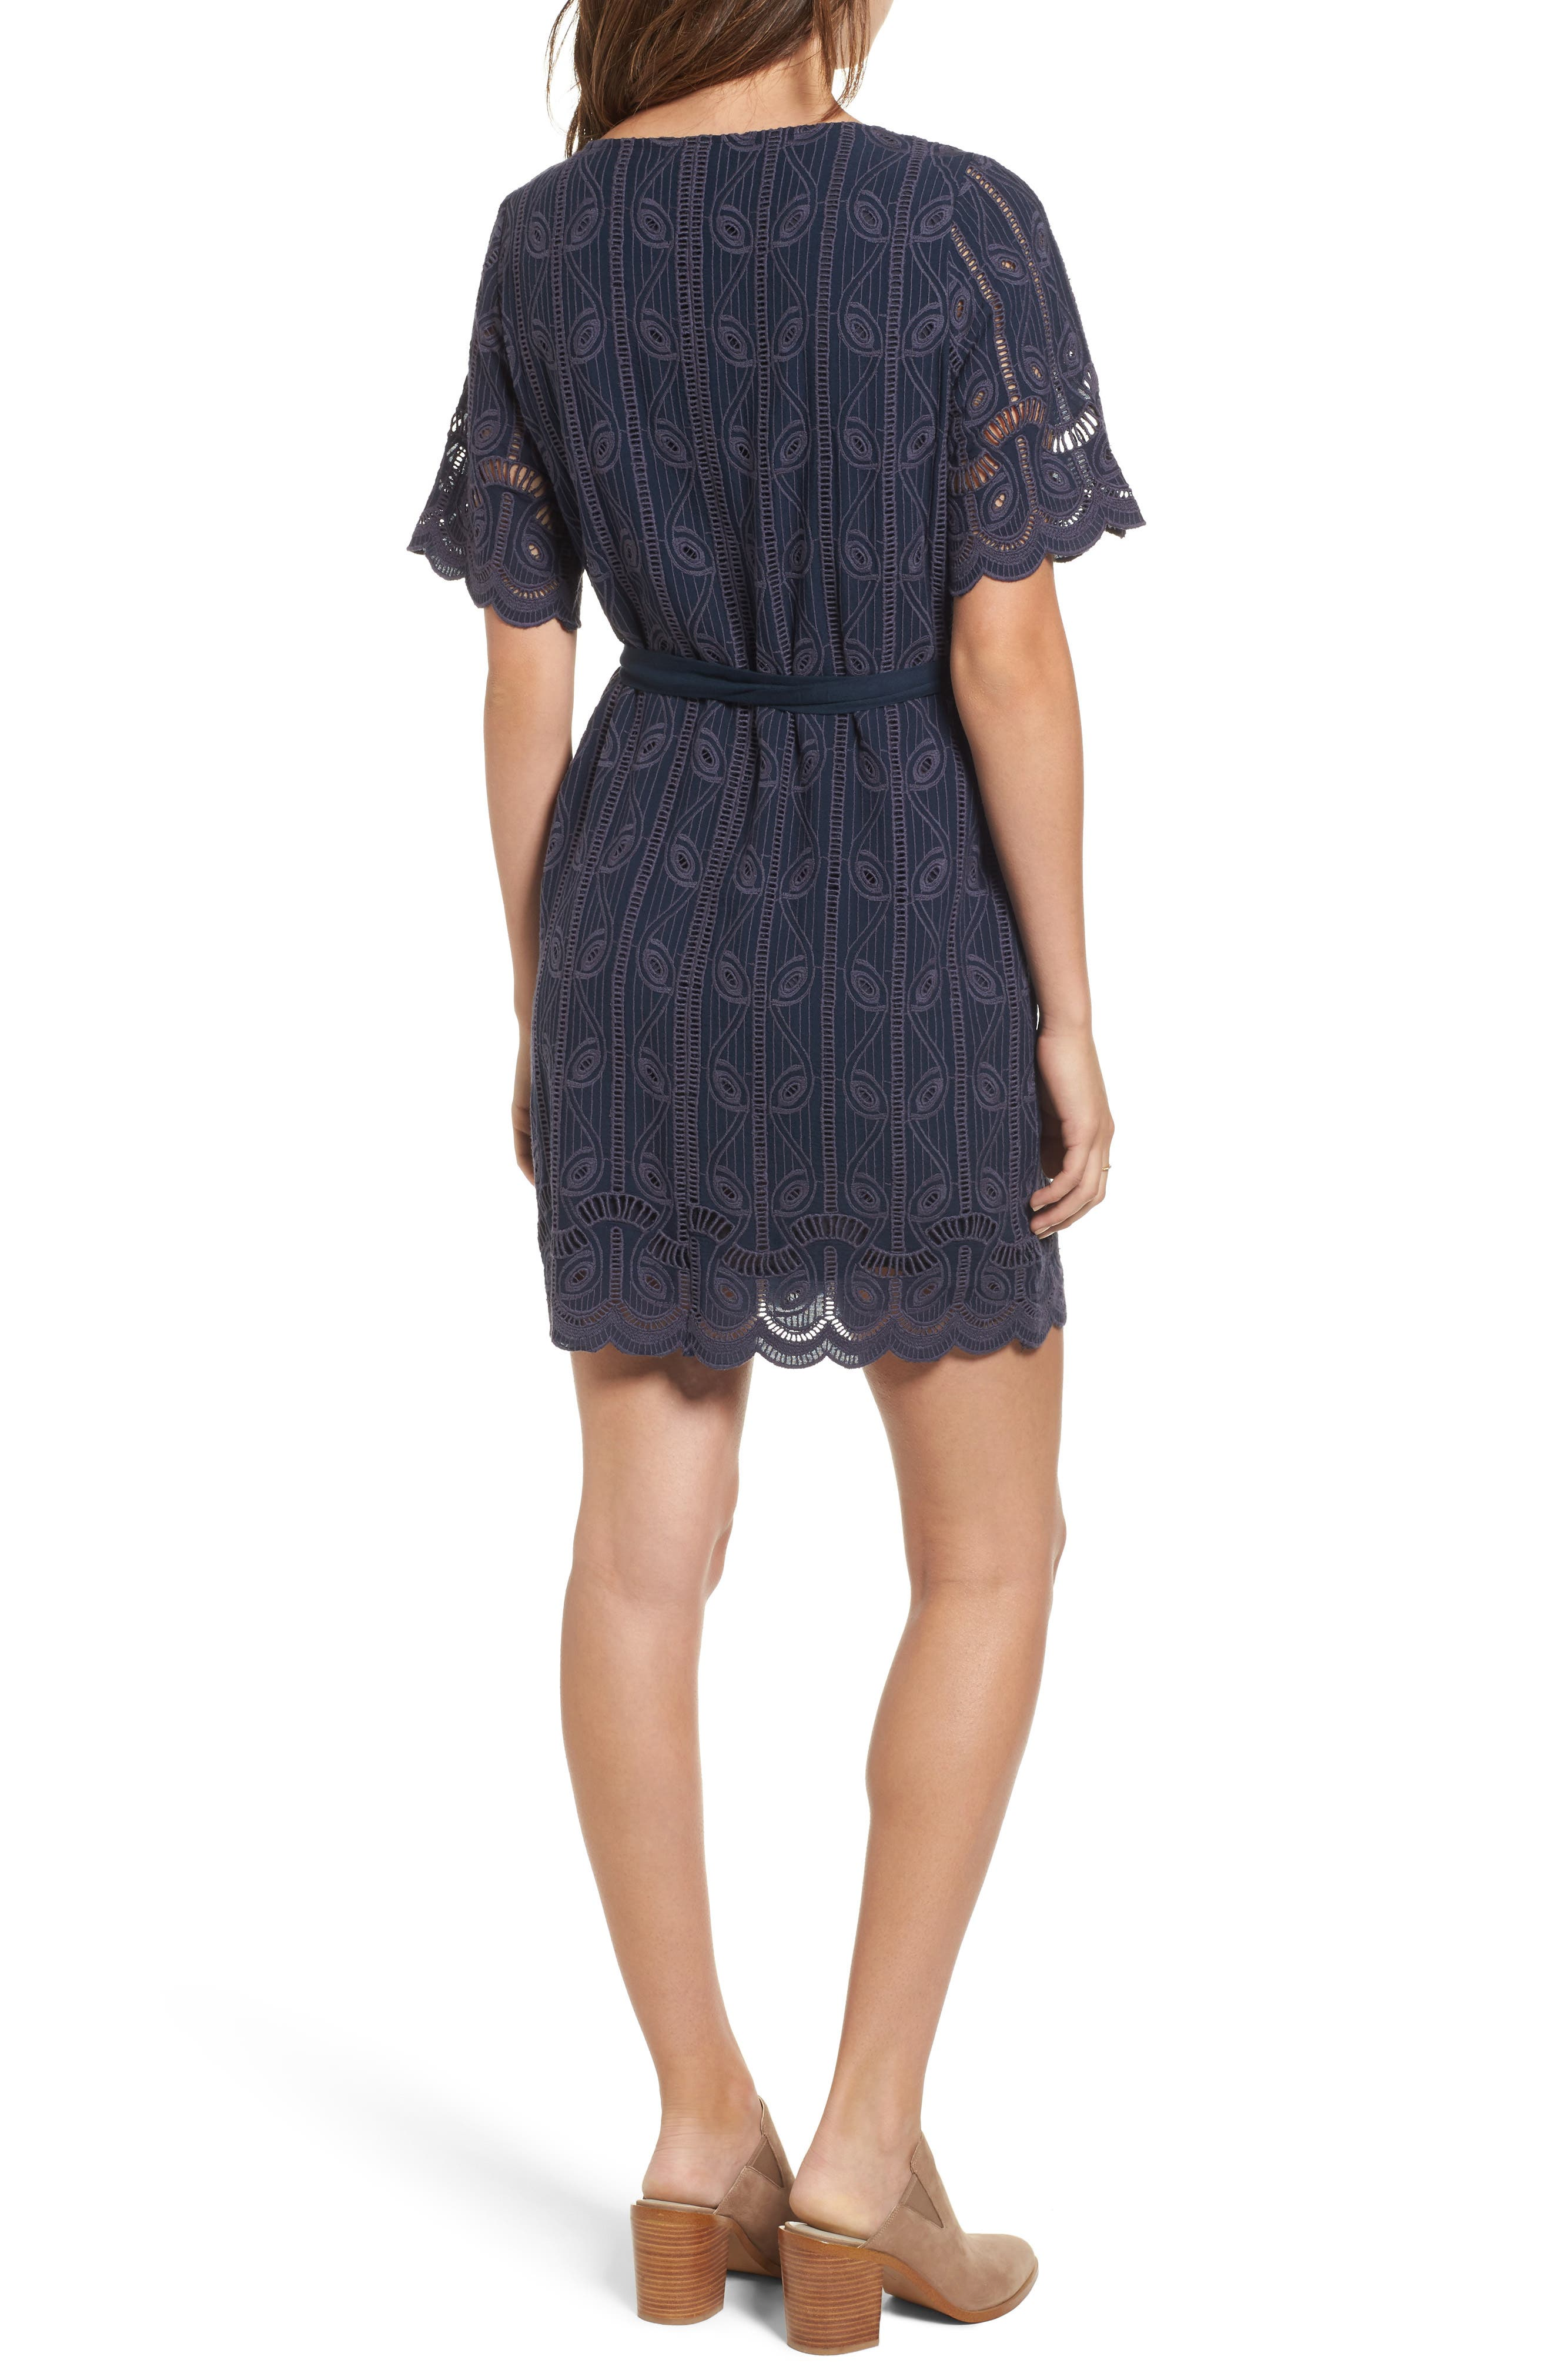 Rocky Cutwork Embroidery Wrap Dress,                             Alternate thumbnail 2, color,                             400